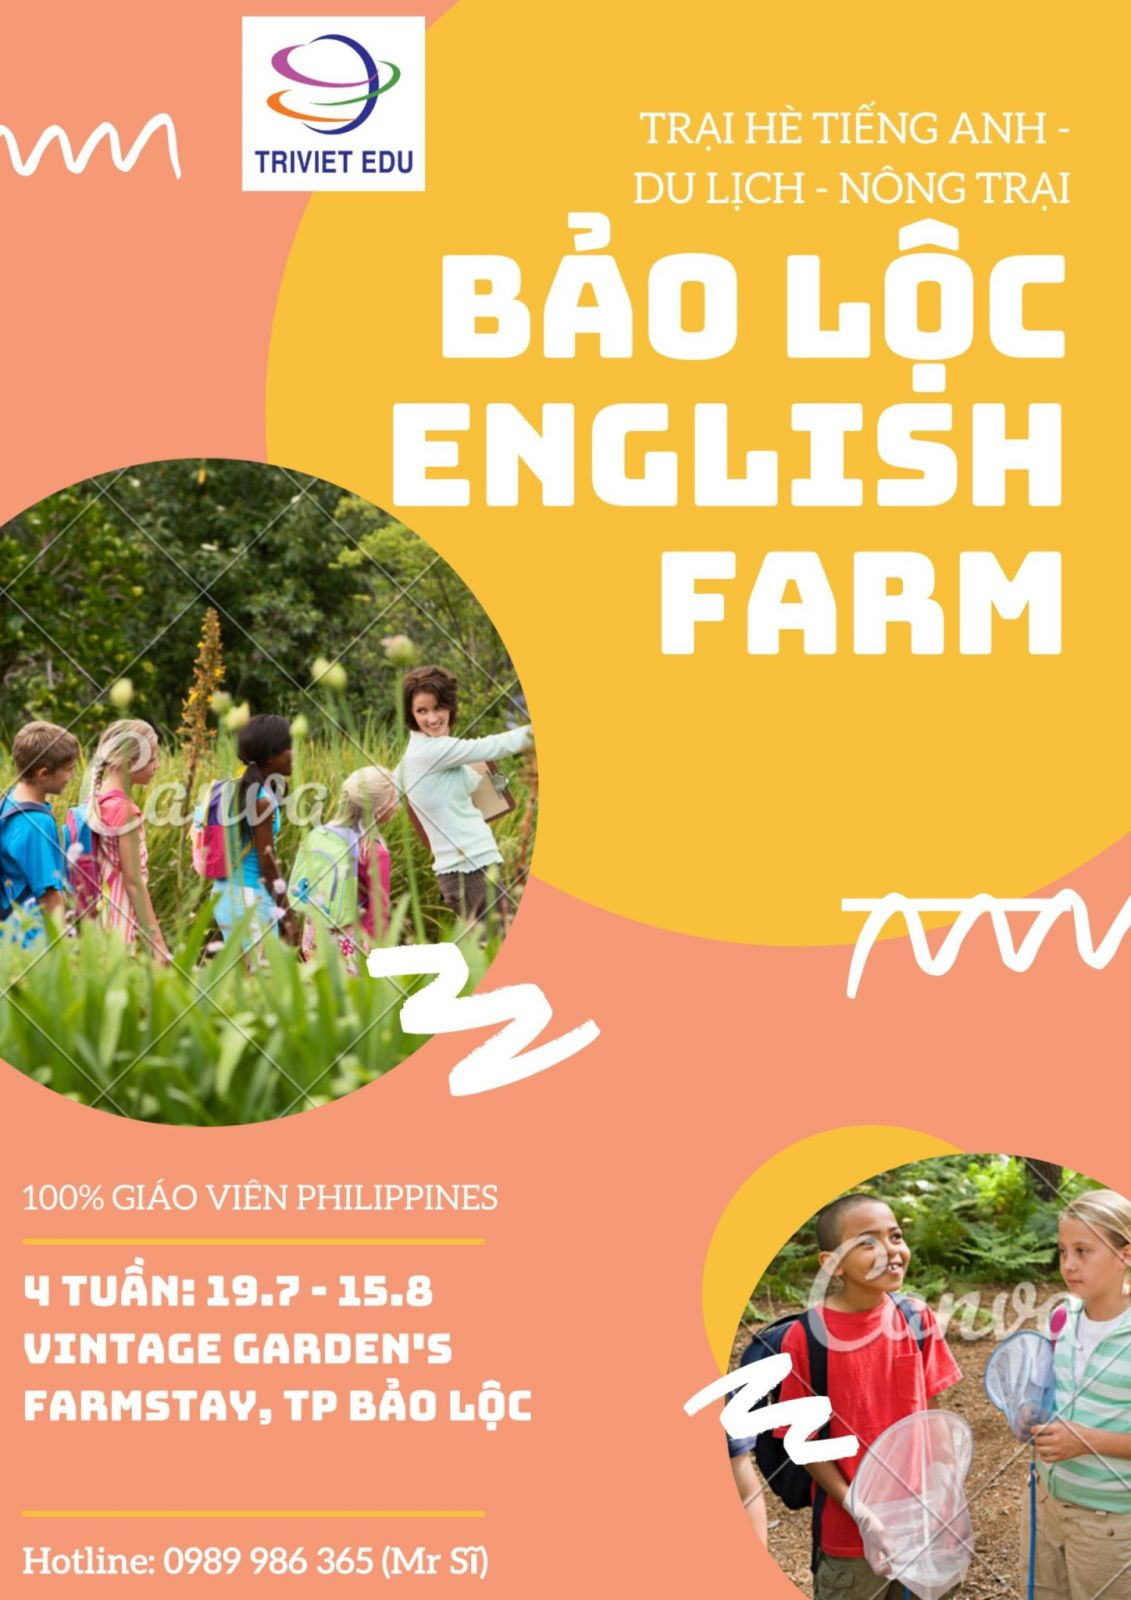 Bao loc English Farm